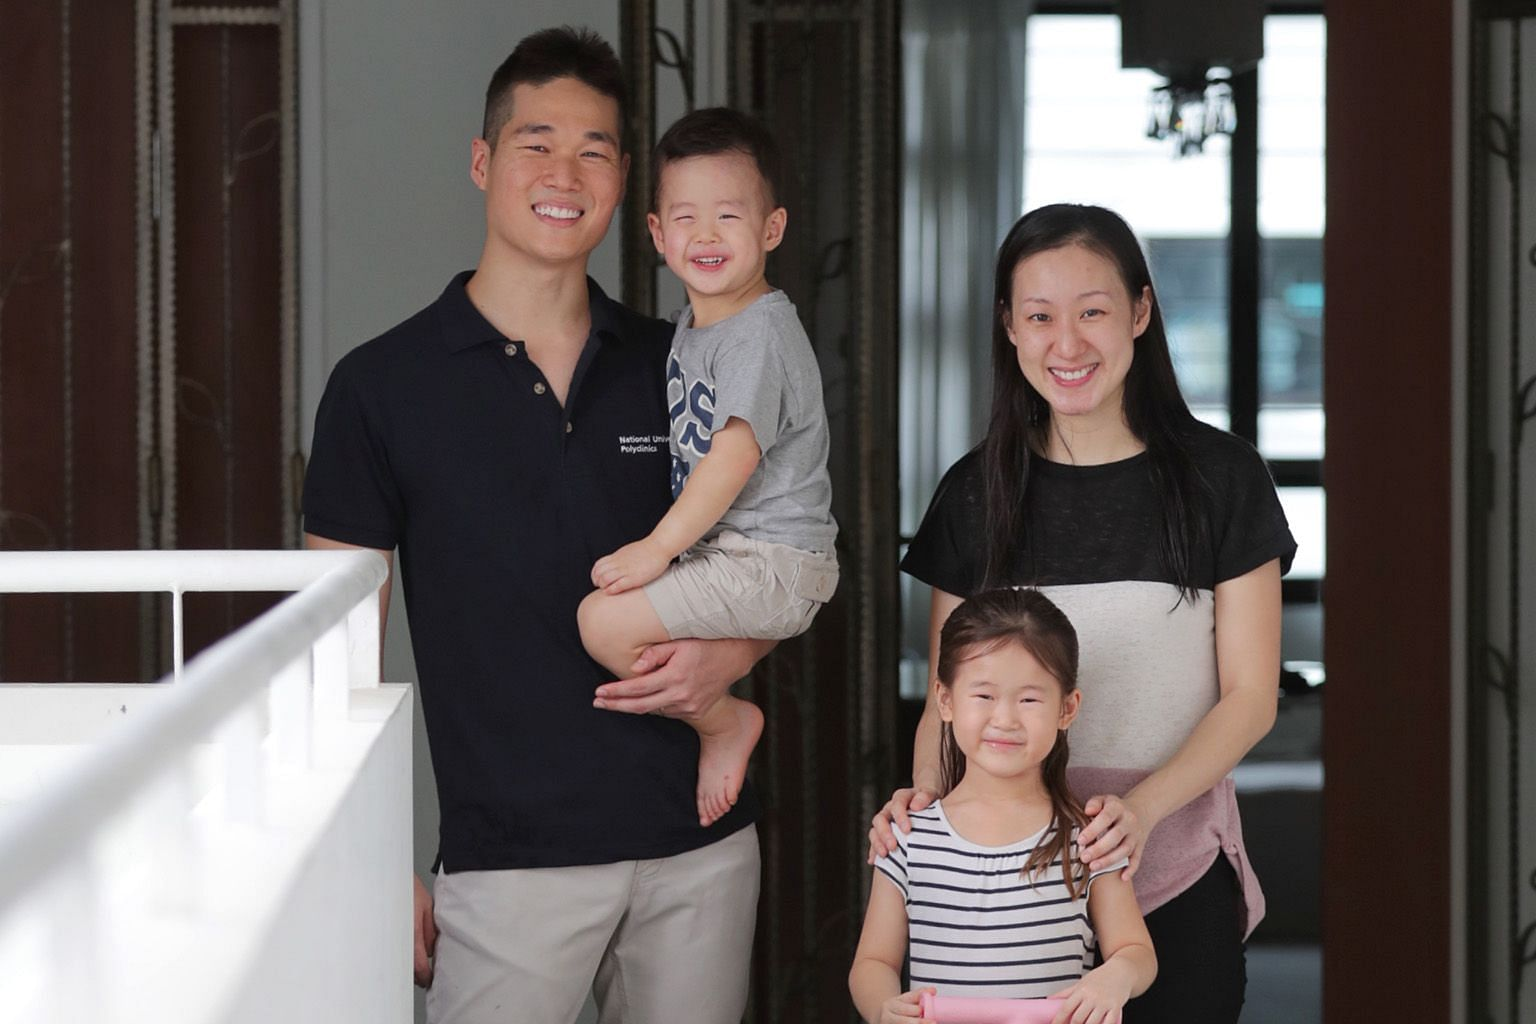 Dr Hou Minsheng, 32, a family physician at Choa Chu Kang Polyclinic, with his wife Deborah, also 32, a dentist by training, and their children - five-year-old Hannah and three-year-old Ethan.